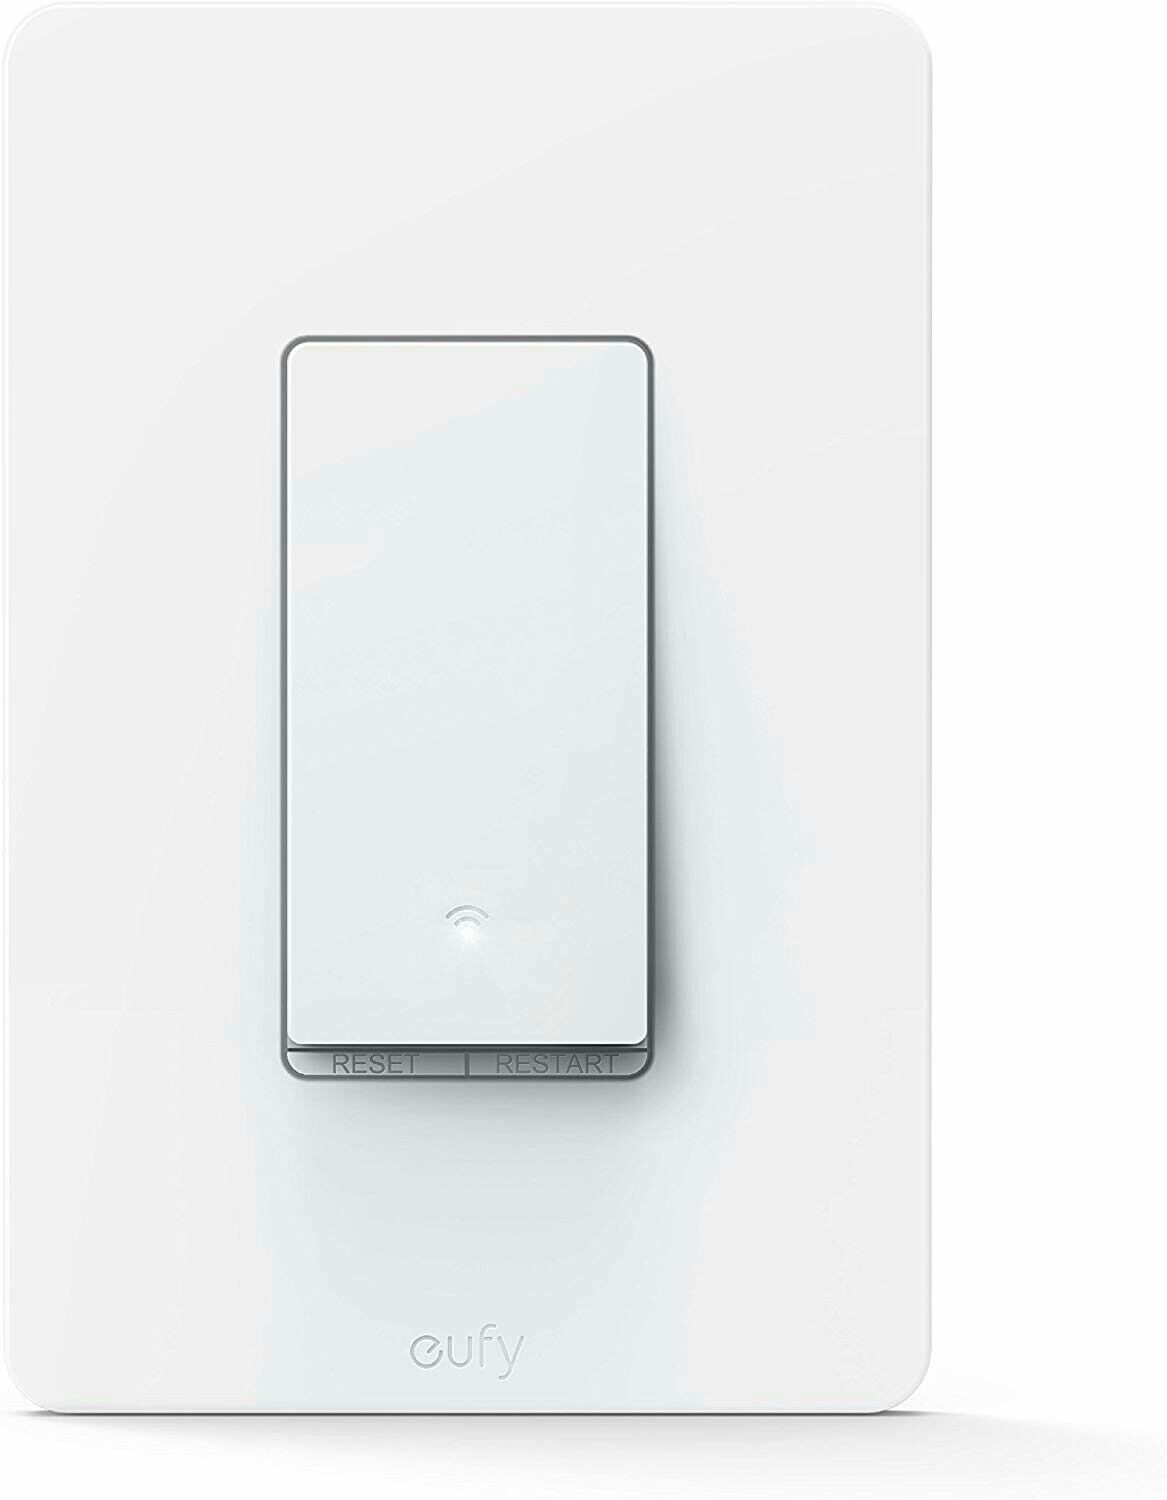 Eufy Smart Switch, Amazon Alexa and the Google Assistant Compatible, Wi-Fi...